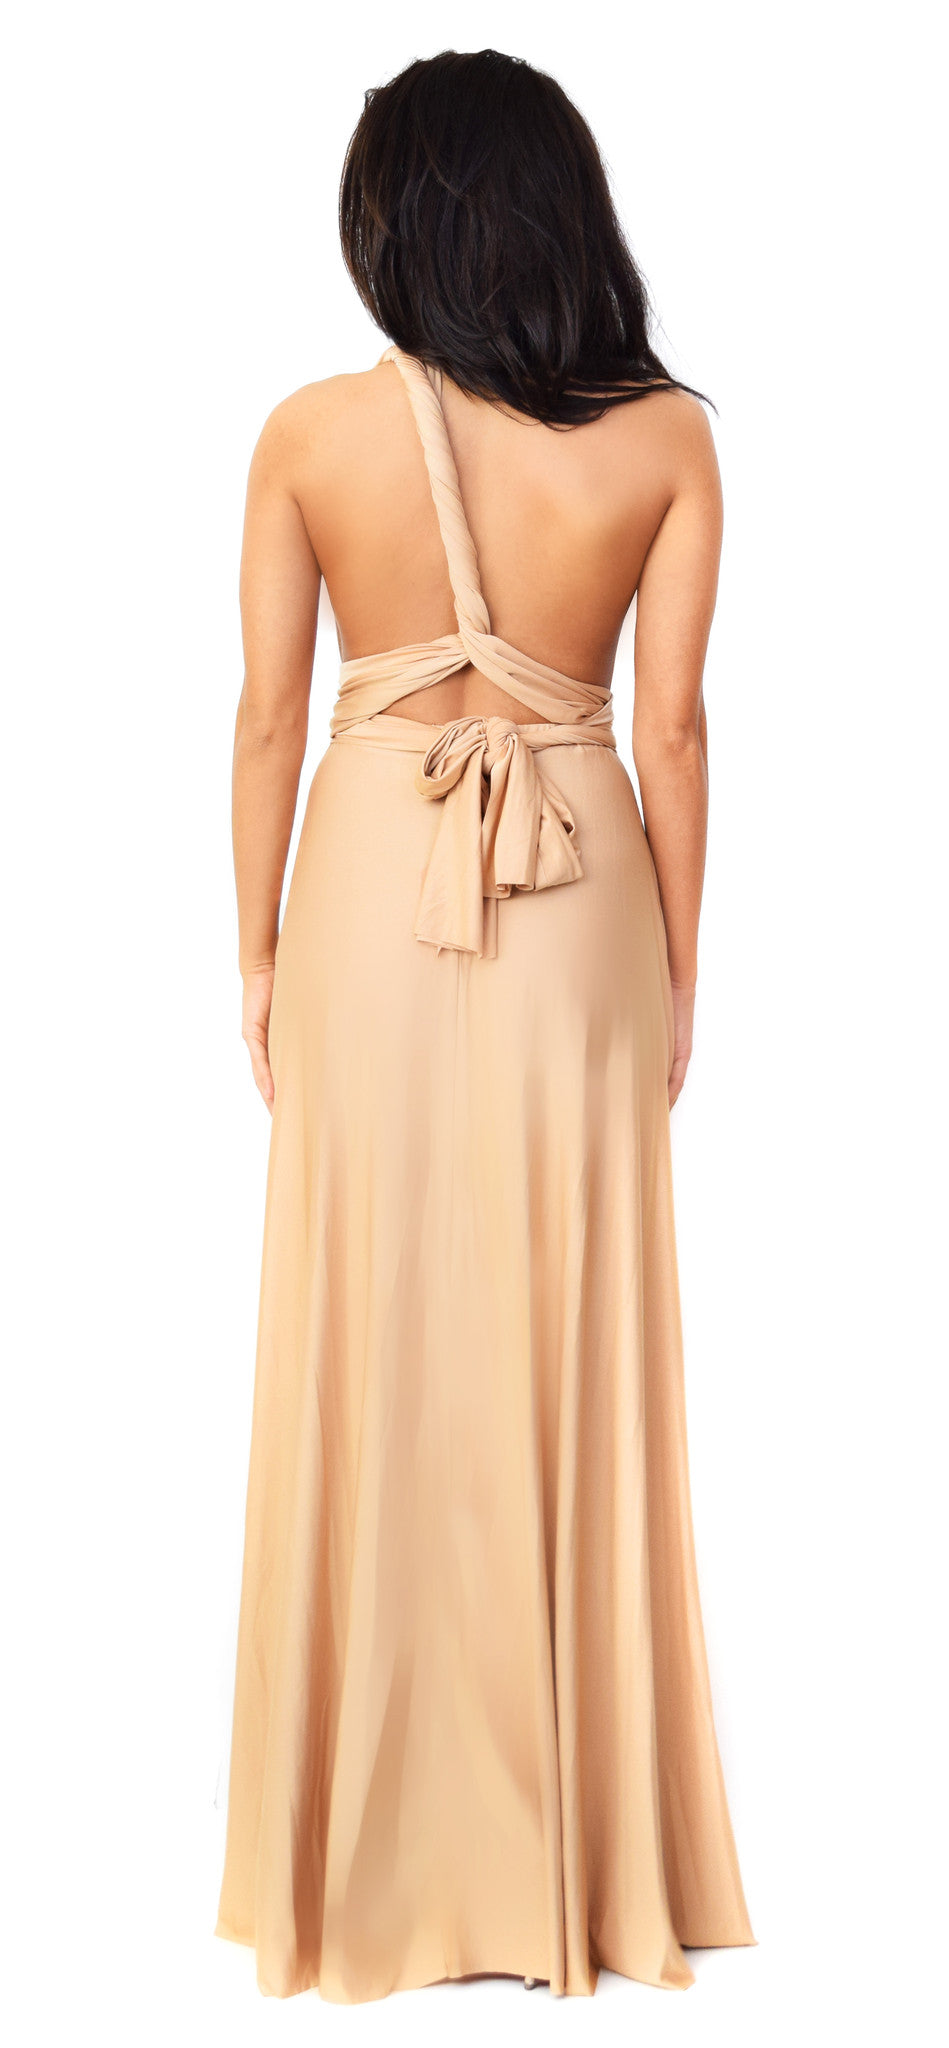 Geneva Multiway Nude Maxi Dress - Emprada